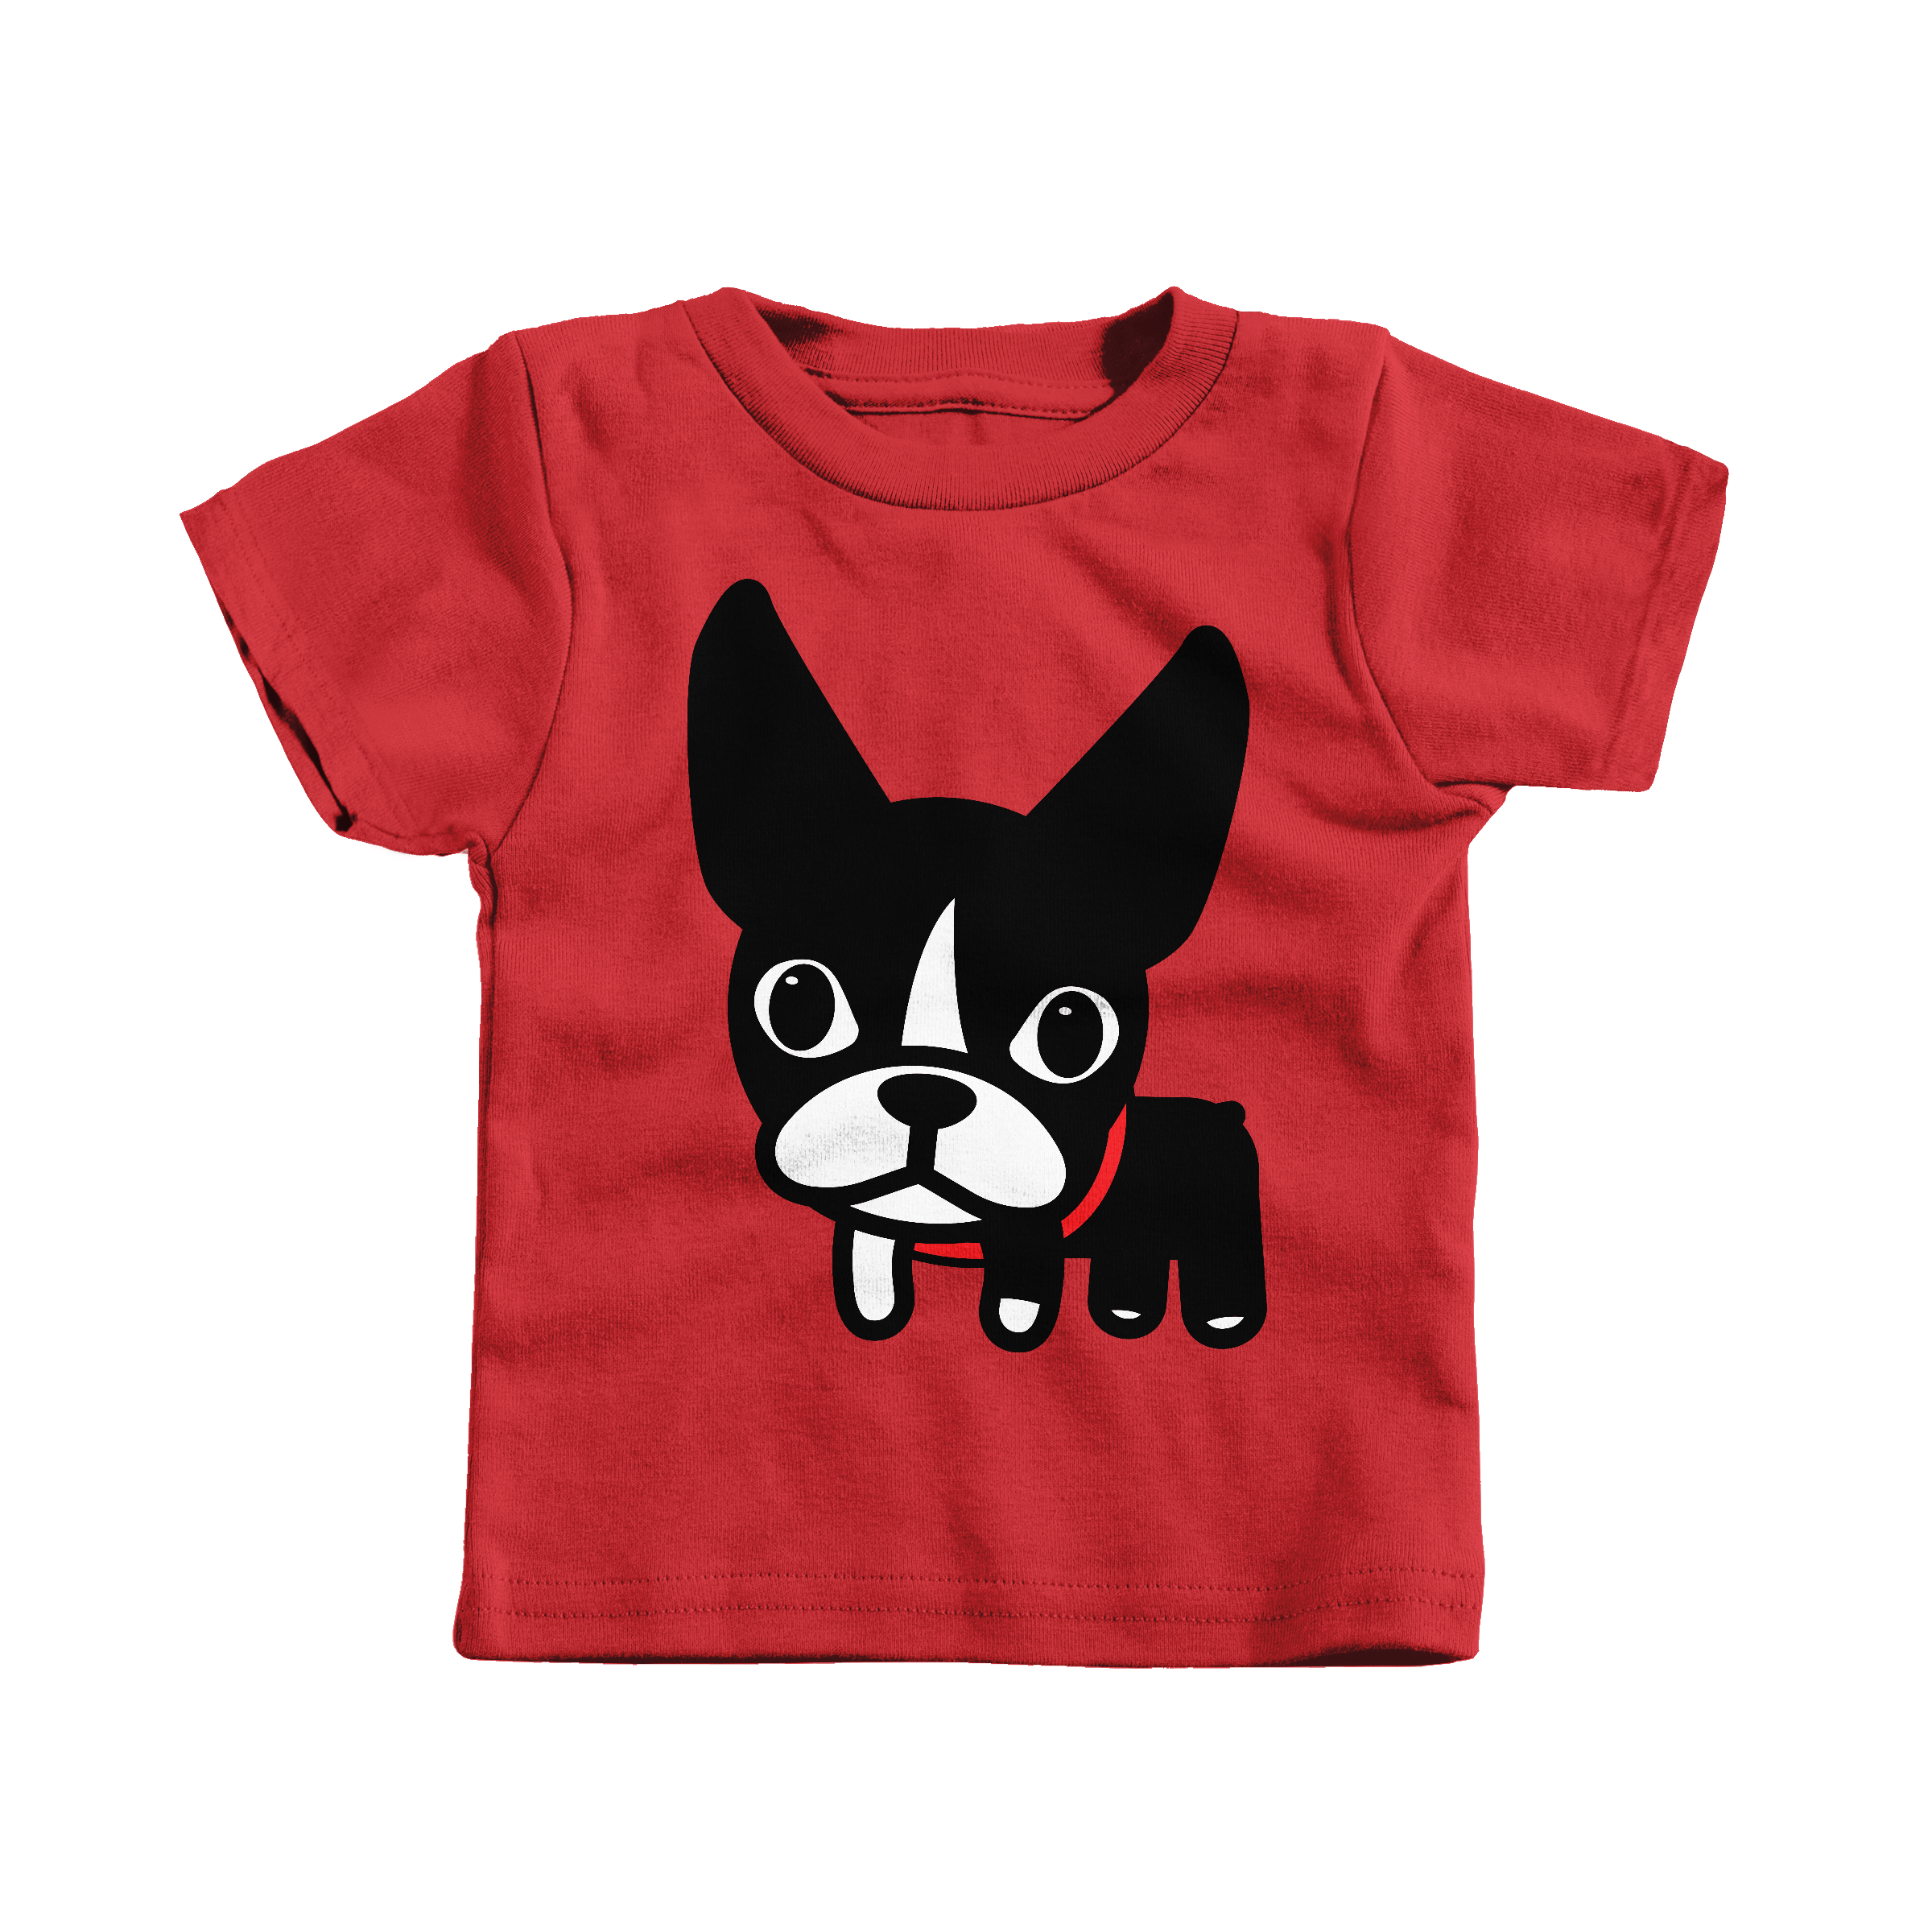 Just Luna Red (T-Shirt)